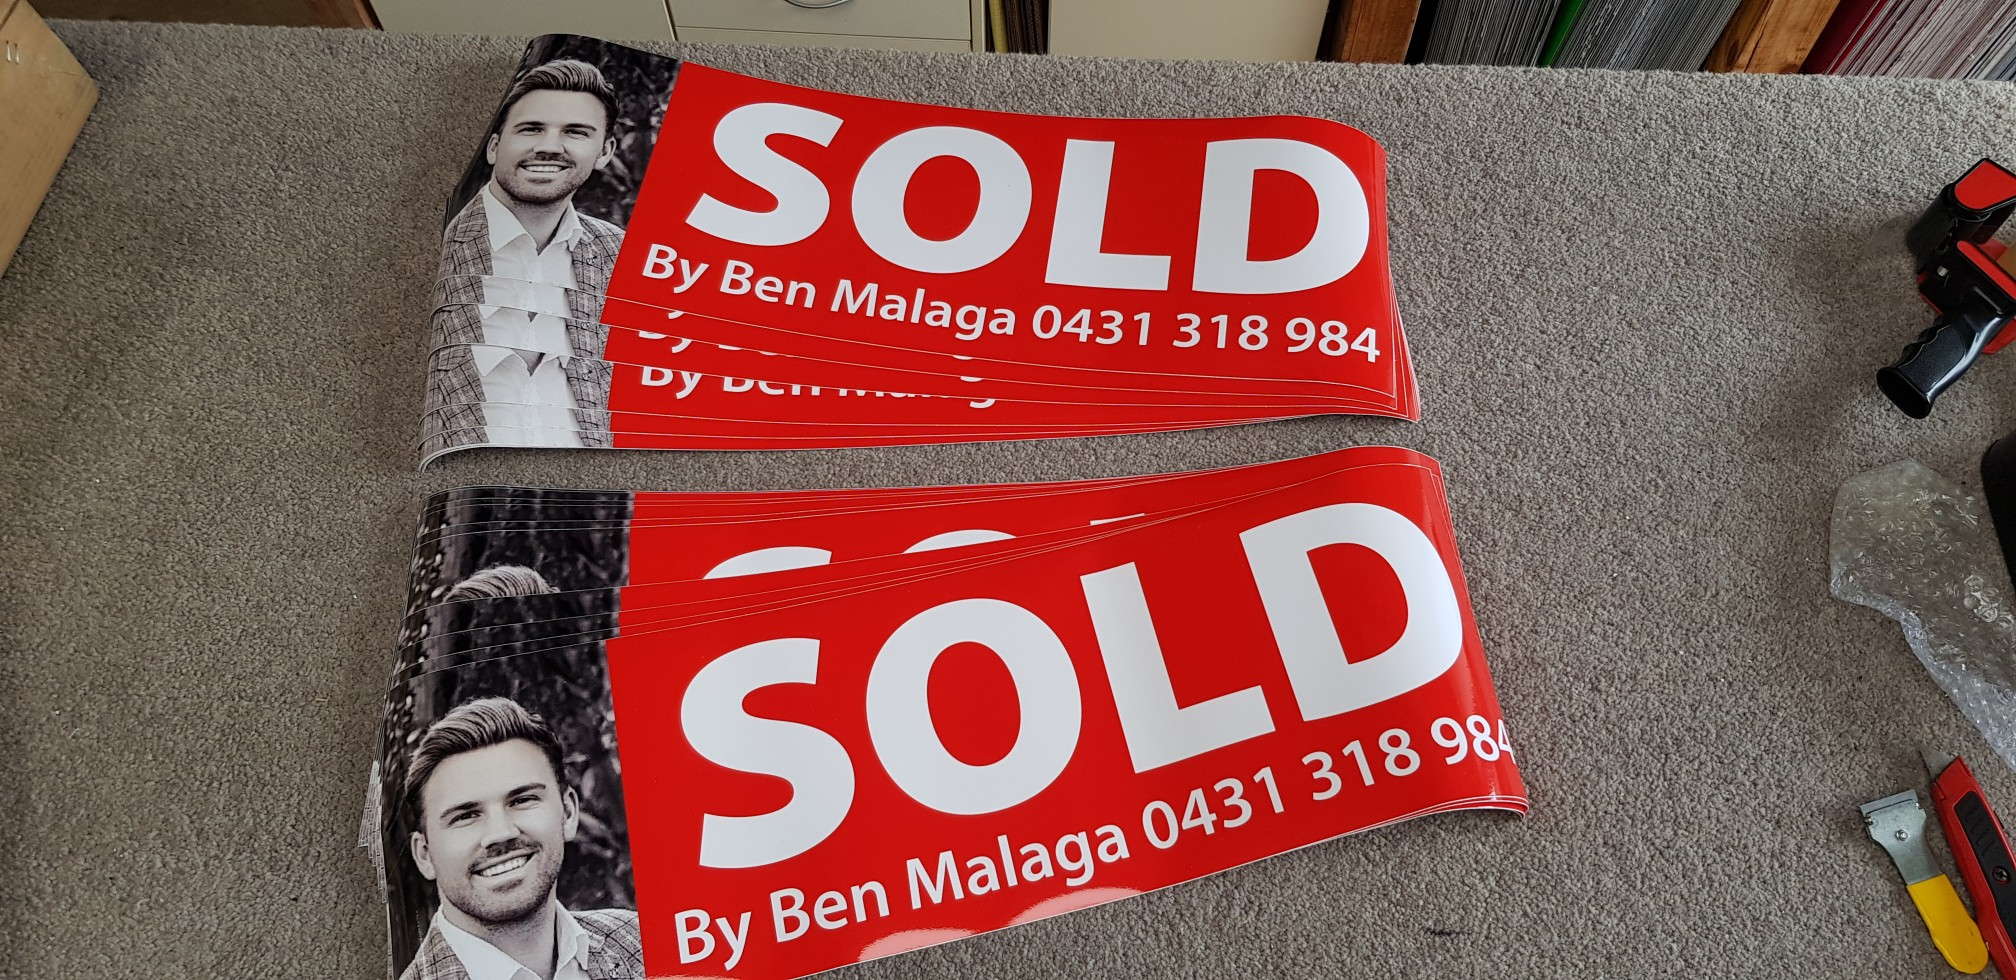 malaga-real-estate-730x240mm-sold-sticker.jpg